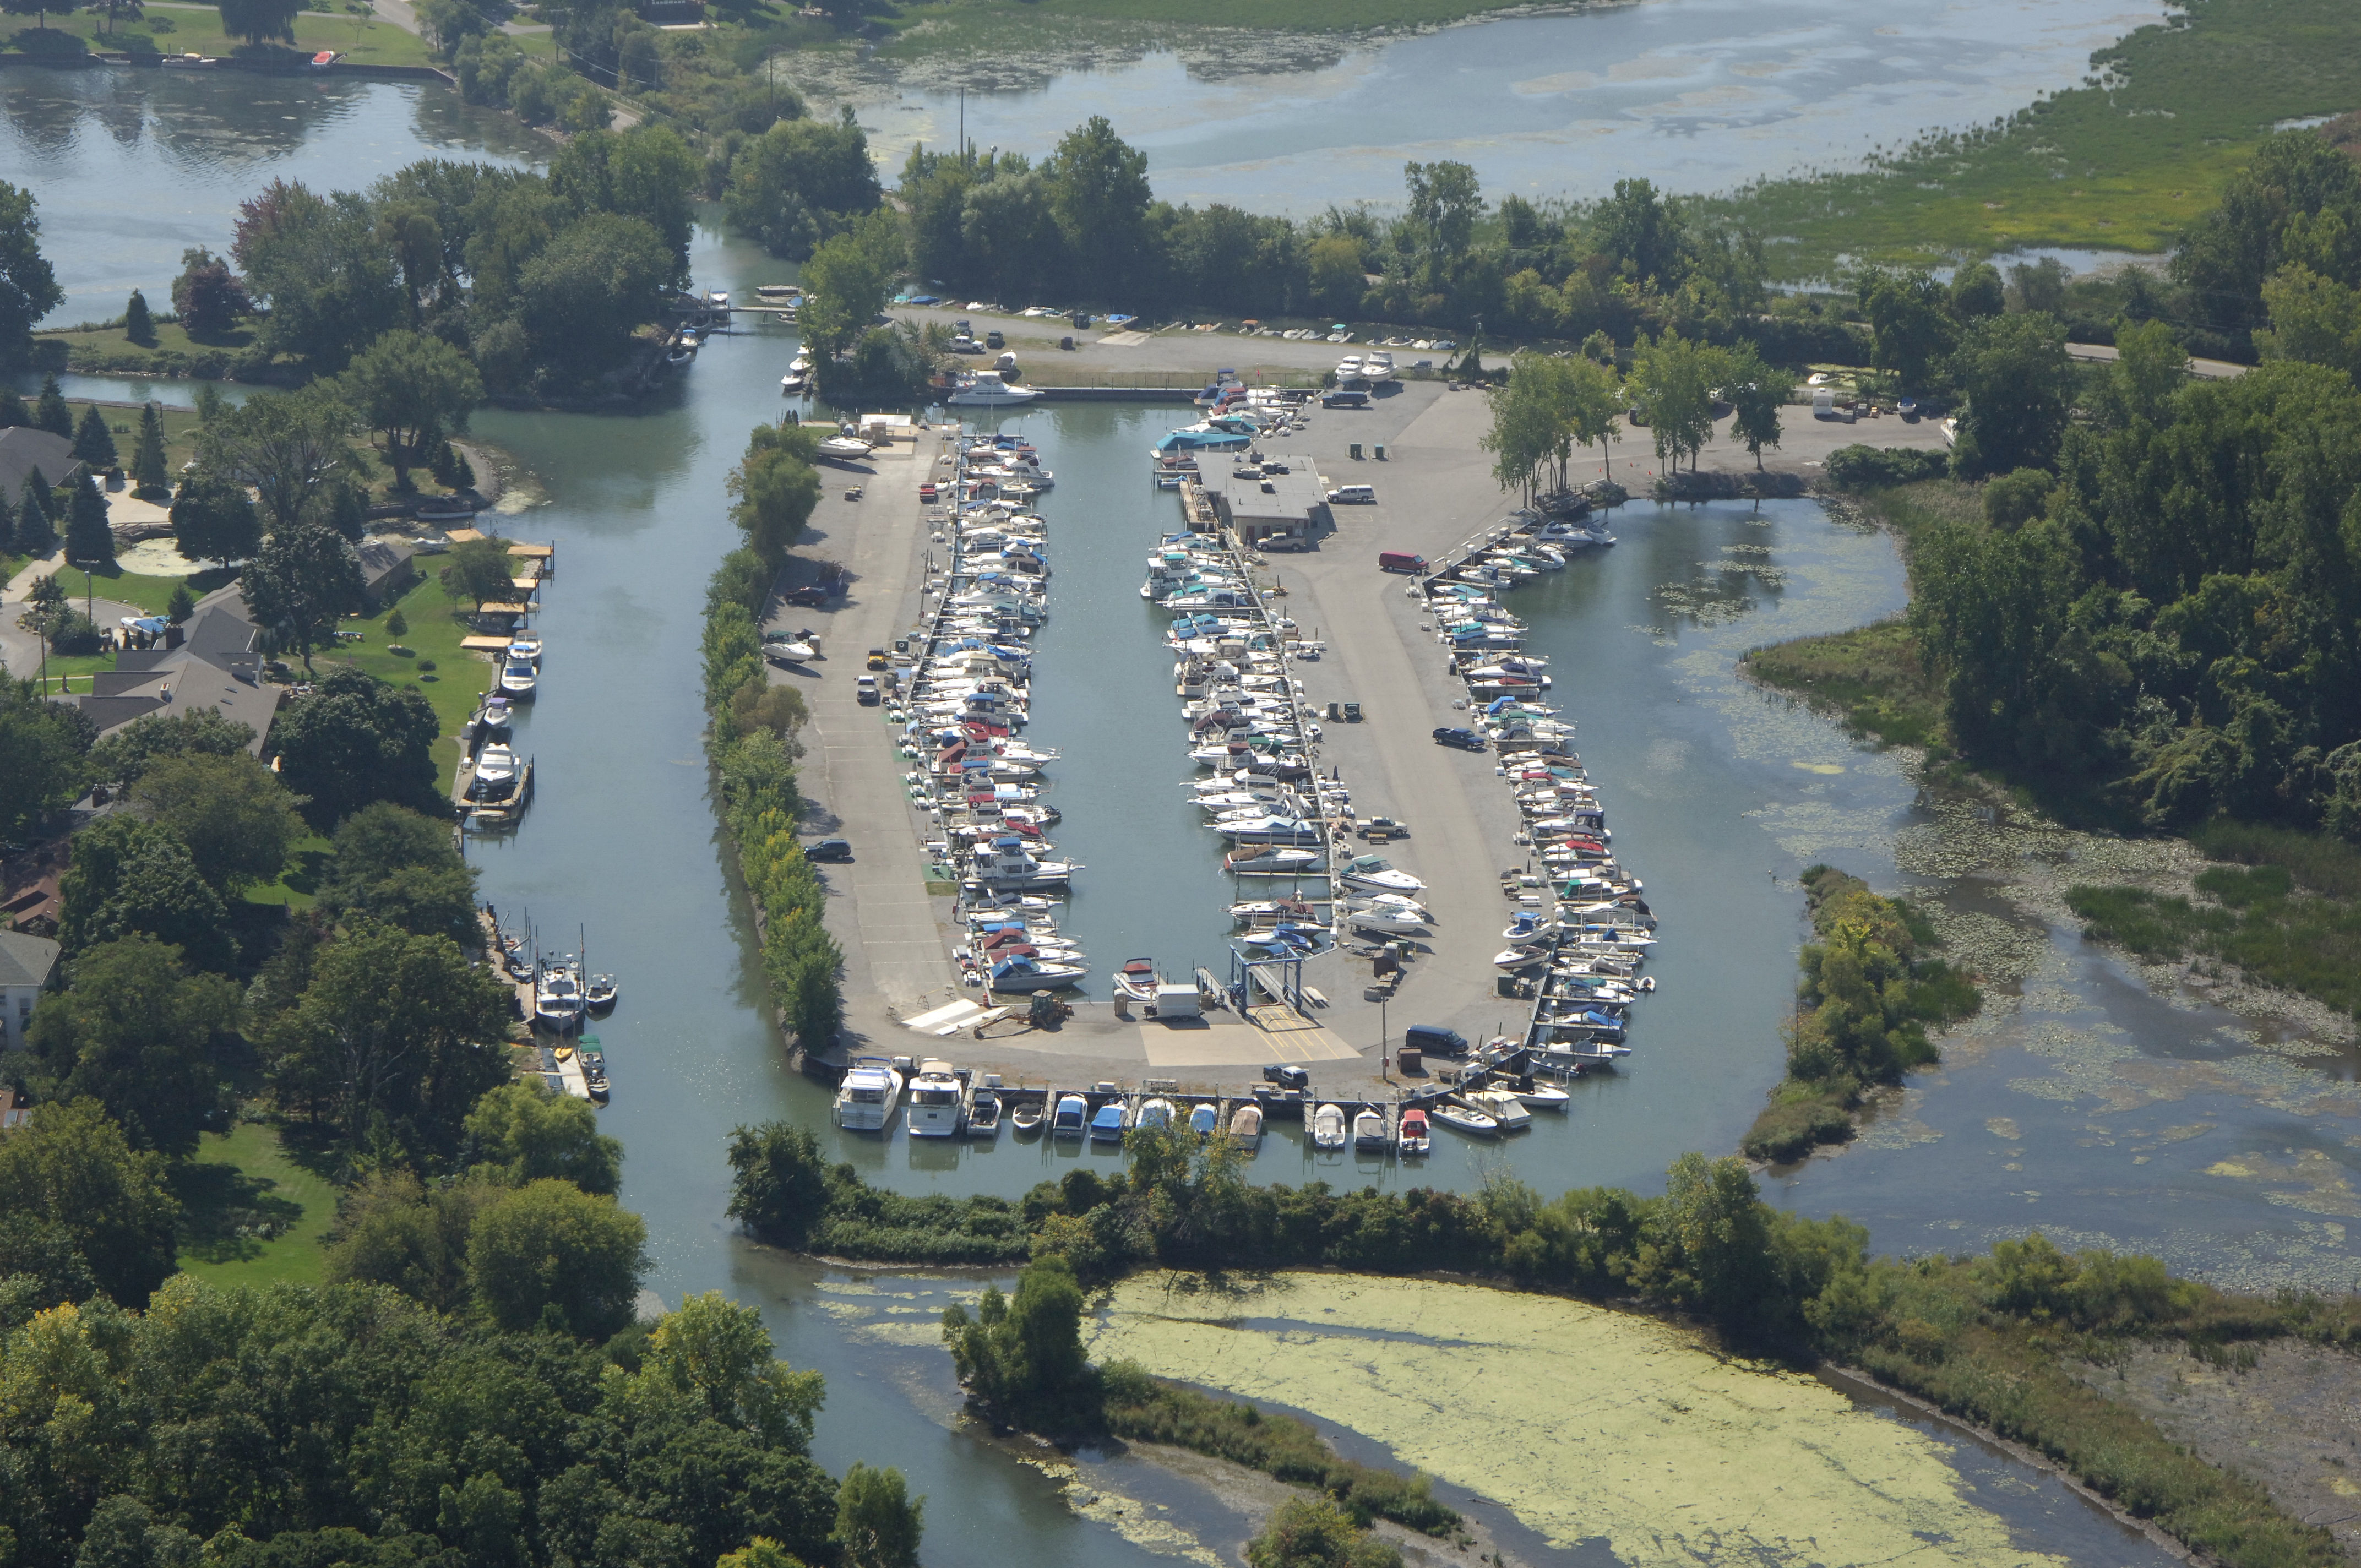 grosse ile Searching for homes for sale in grosse ile, mi find local real estate listings with century 21.